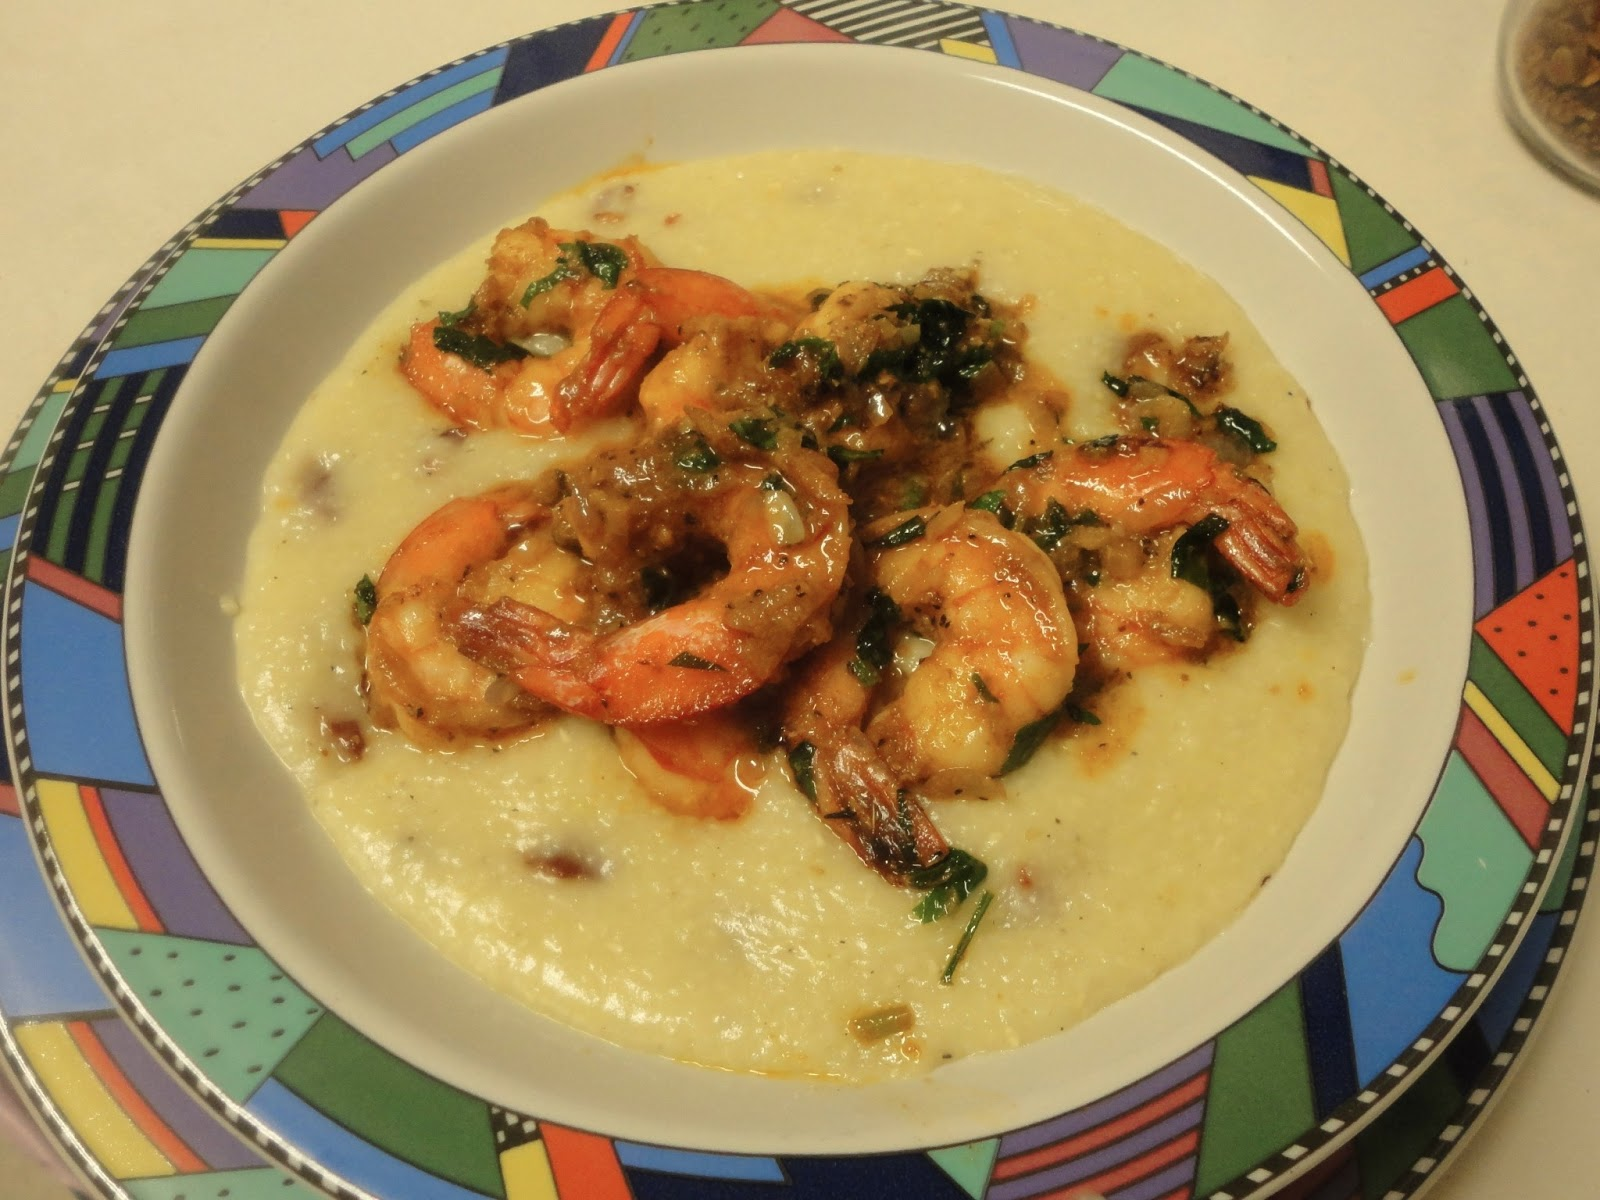 Chef Danielle's Lobster Shrimp and Gluten free Yellow Stoneground White Cheddar Grits (Click for Recipe)